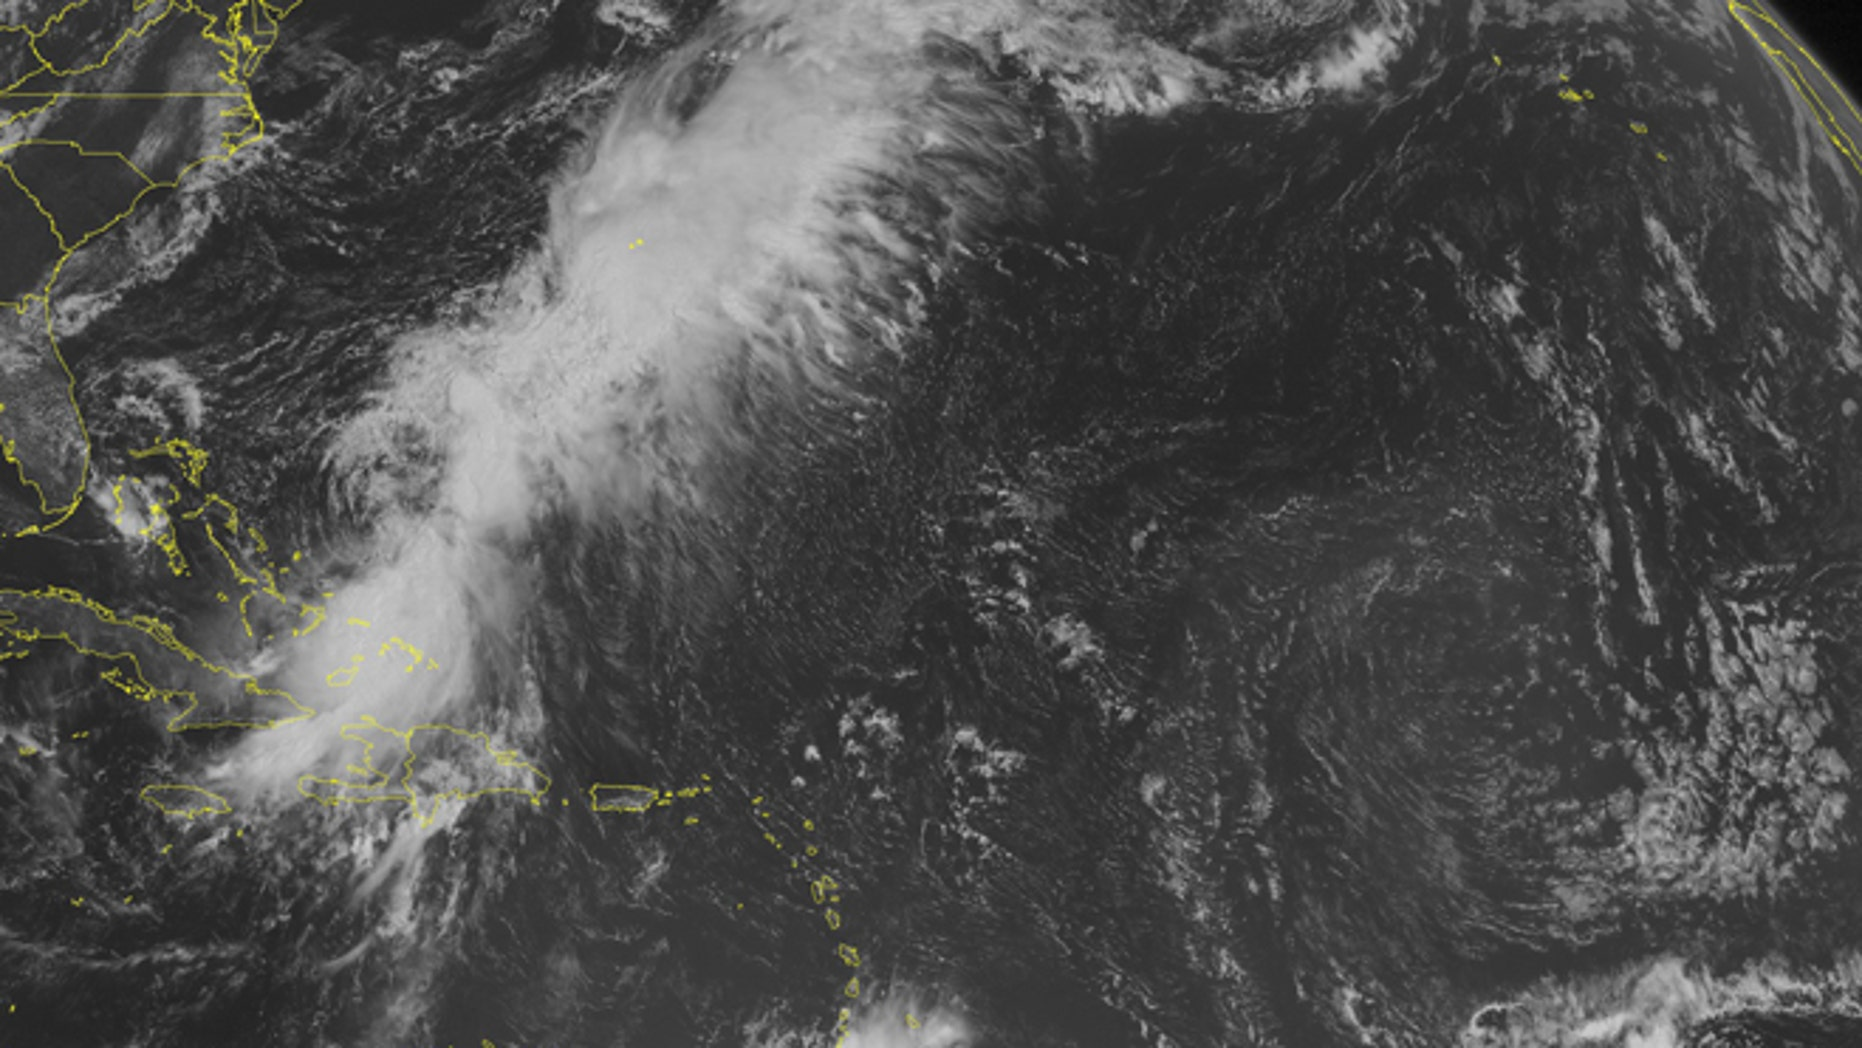 This NOAA satellite image taken Monday, Aug. 25, 2014, at 10:45 a.m. EDT shows Tropical Storm Cristobal affecting the southeastern Bahamas, far eastern Cuba and Hispaniola.  Most of the shower activity associated with the system was far-re moved from the center of circulation, indicating a sheared and possibly weakening system.  Meanwhile, widespread shower and thunderstorm activity was streaming to the northeast of the tropical system, along a stationary frontal boundary draped through the Atlantic.  A weak tropical wave was producing thunderstorms over the southern Lesser Antilles, as well. (AP Photo/Weather Underground)